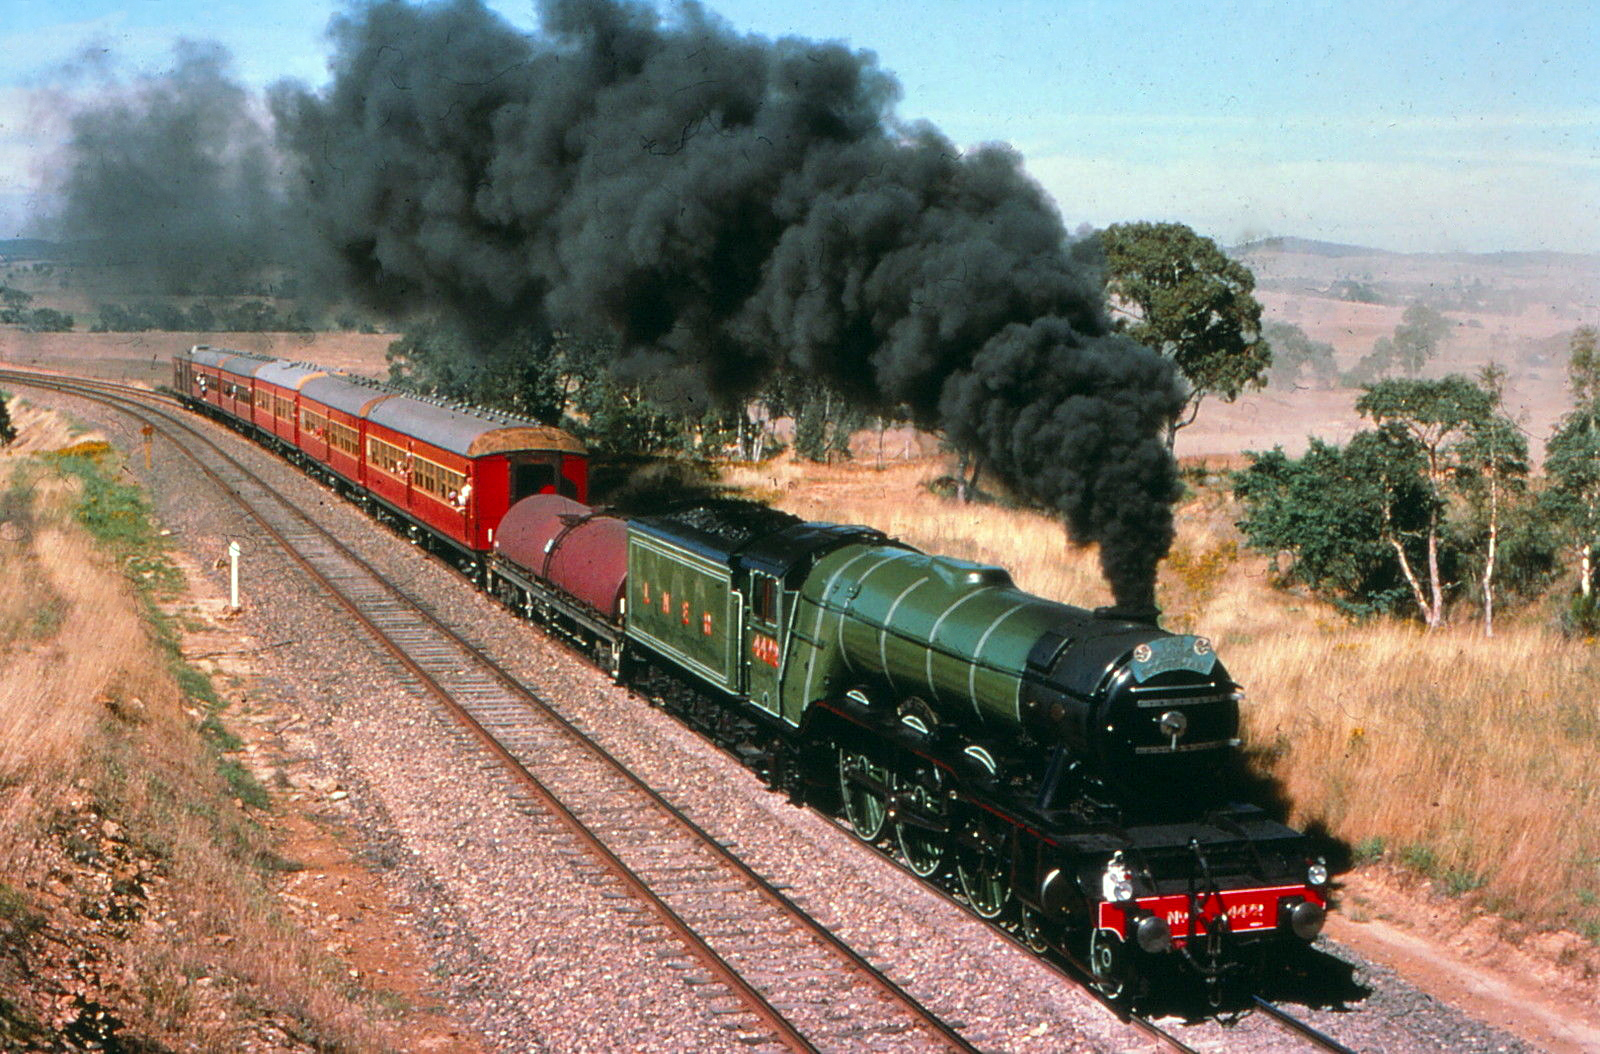 rc world australia with The Flying Scotsman Steamer In on Girls Soccer Football Team Body Painting as well Blurring Lines 1947 Ford Pro Street Rat Rod Pickup Deliverance likewise Hot Dog Car in addition Traxxas Spare Parts Finder furthermore The Flying Scotsman Steamer In.